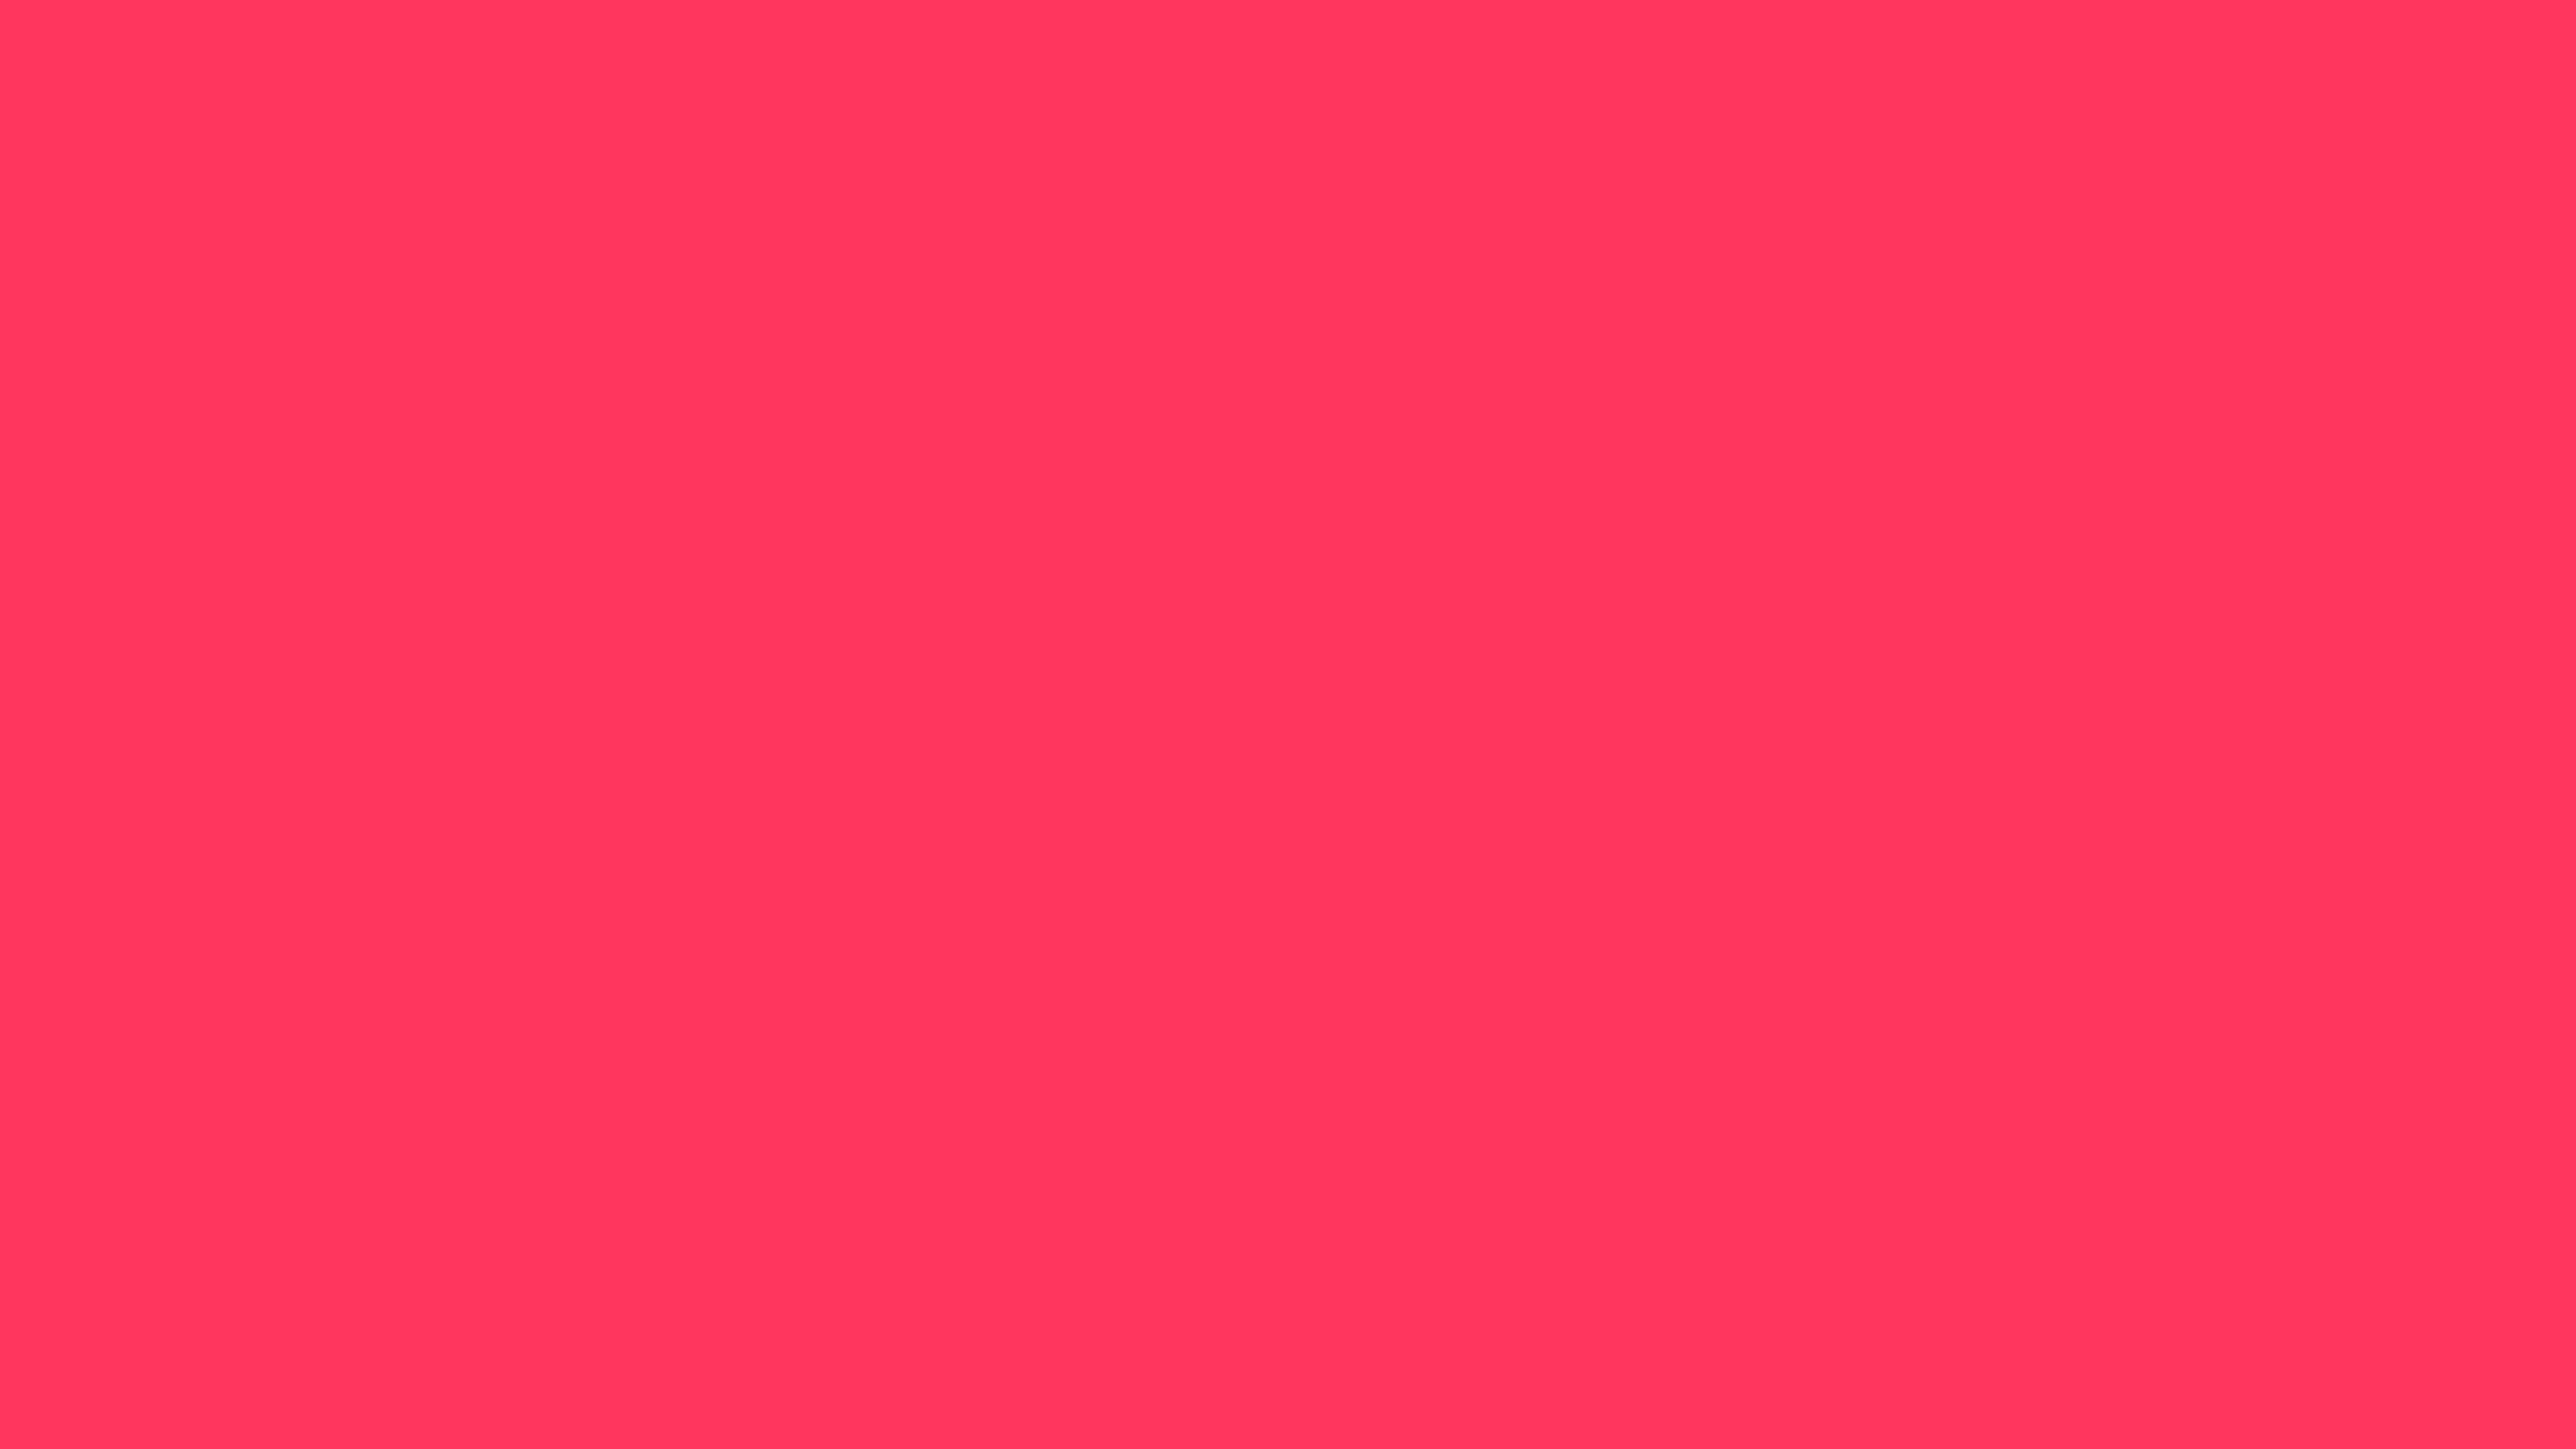 7680x4320 Radical Red Solid Color Background